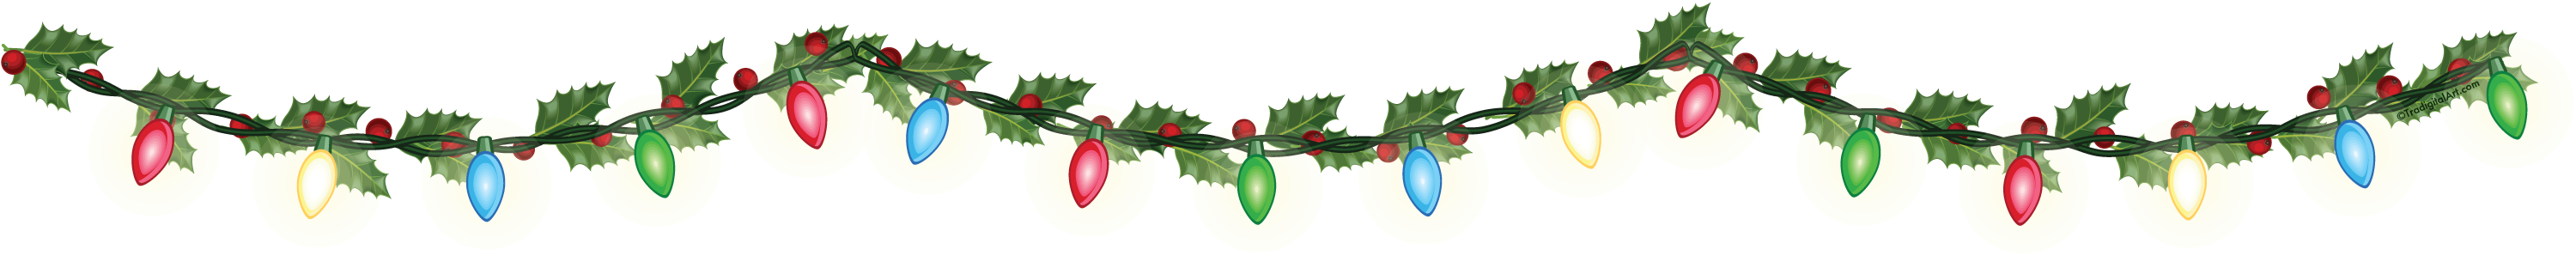 Christmas Garland Clipart Free Download Best Christmas Garland